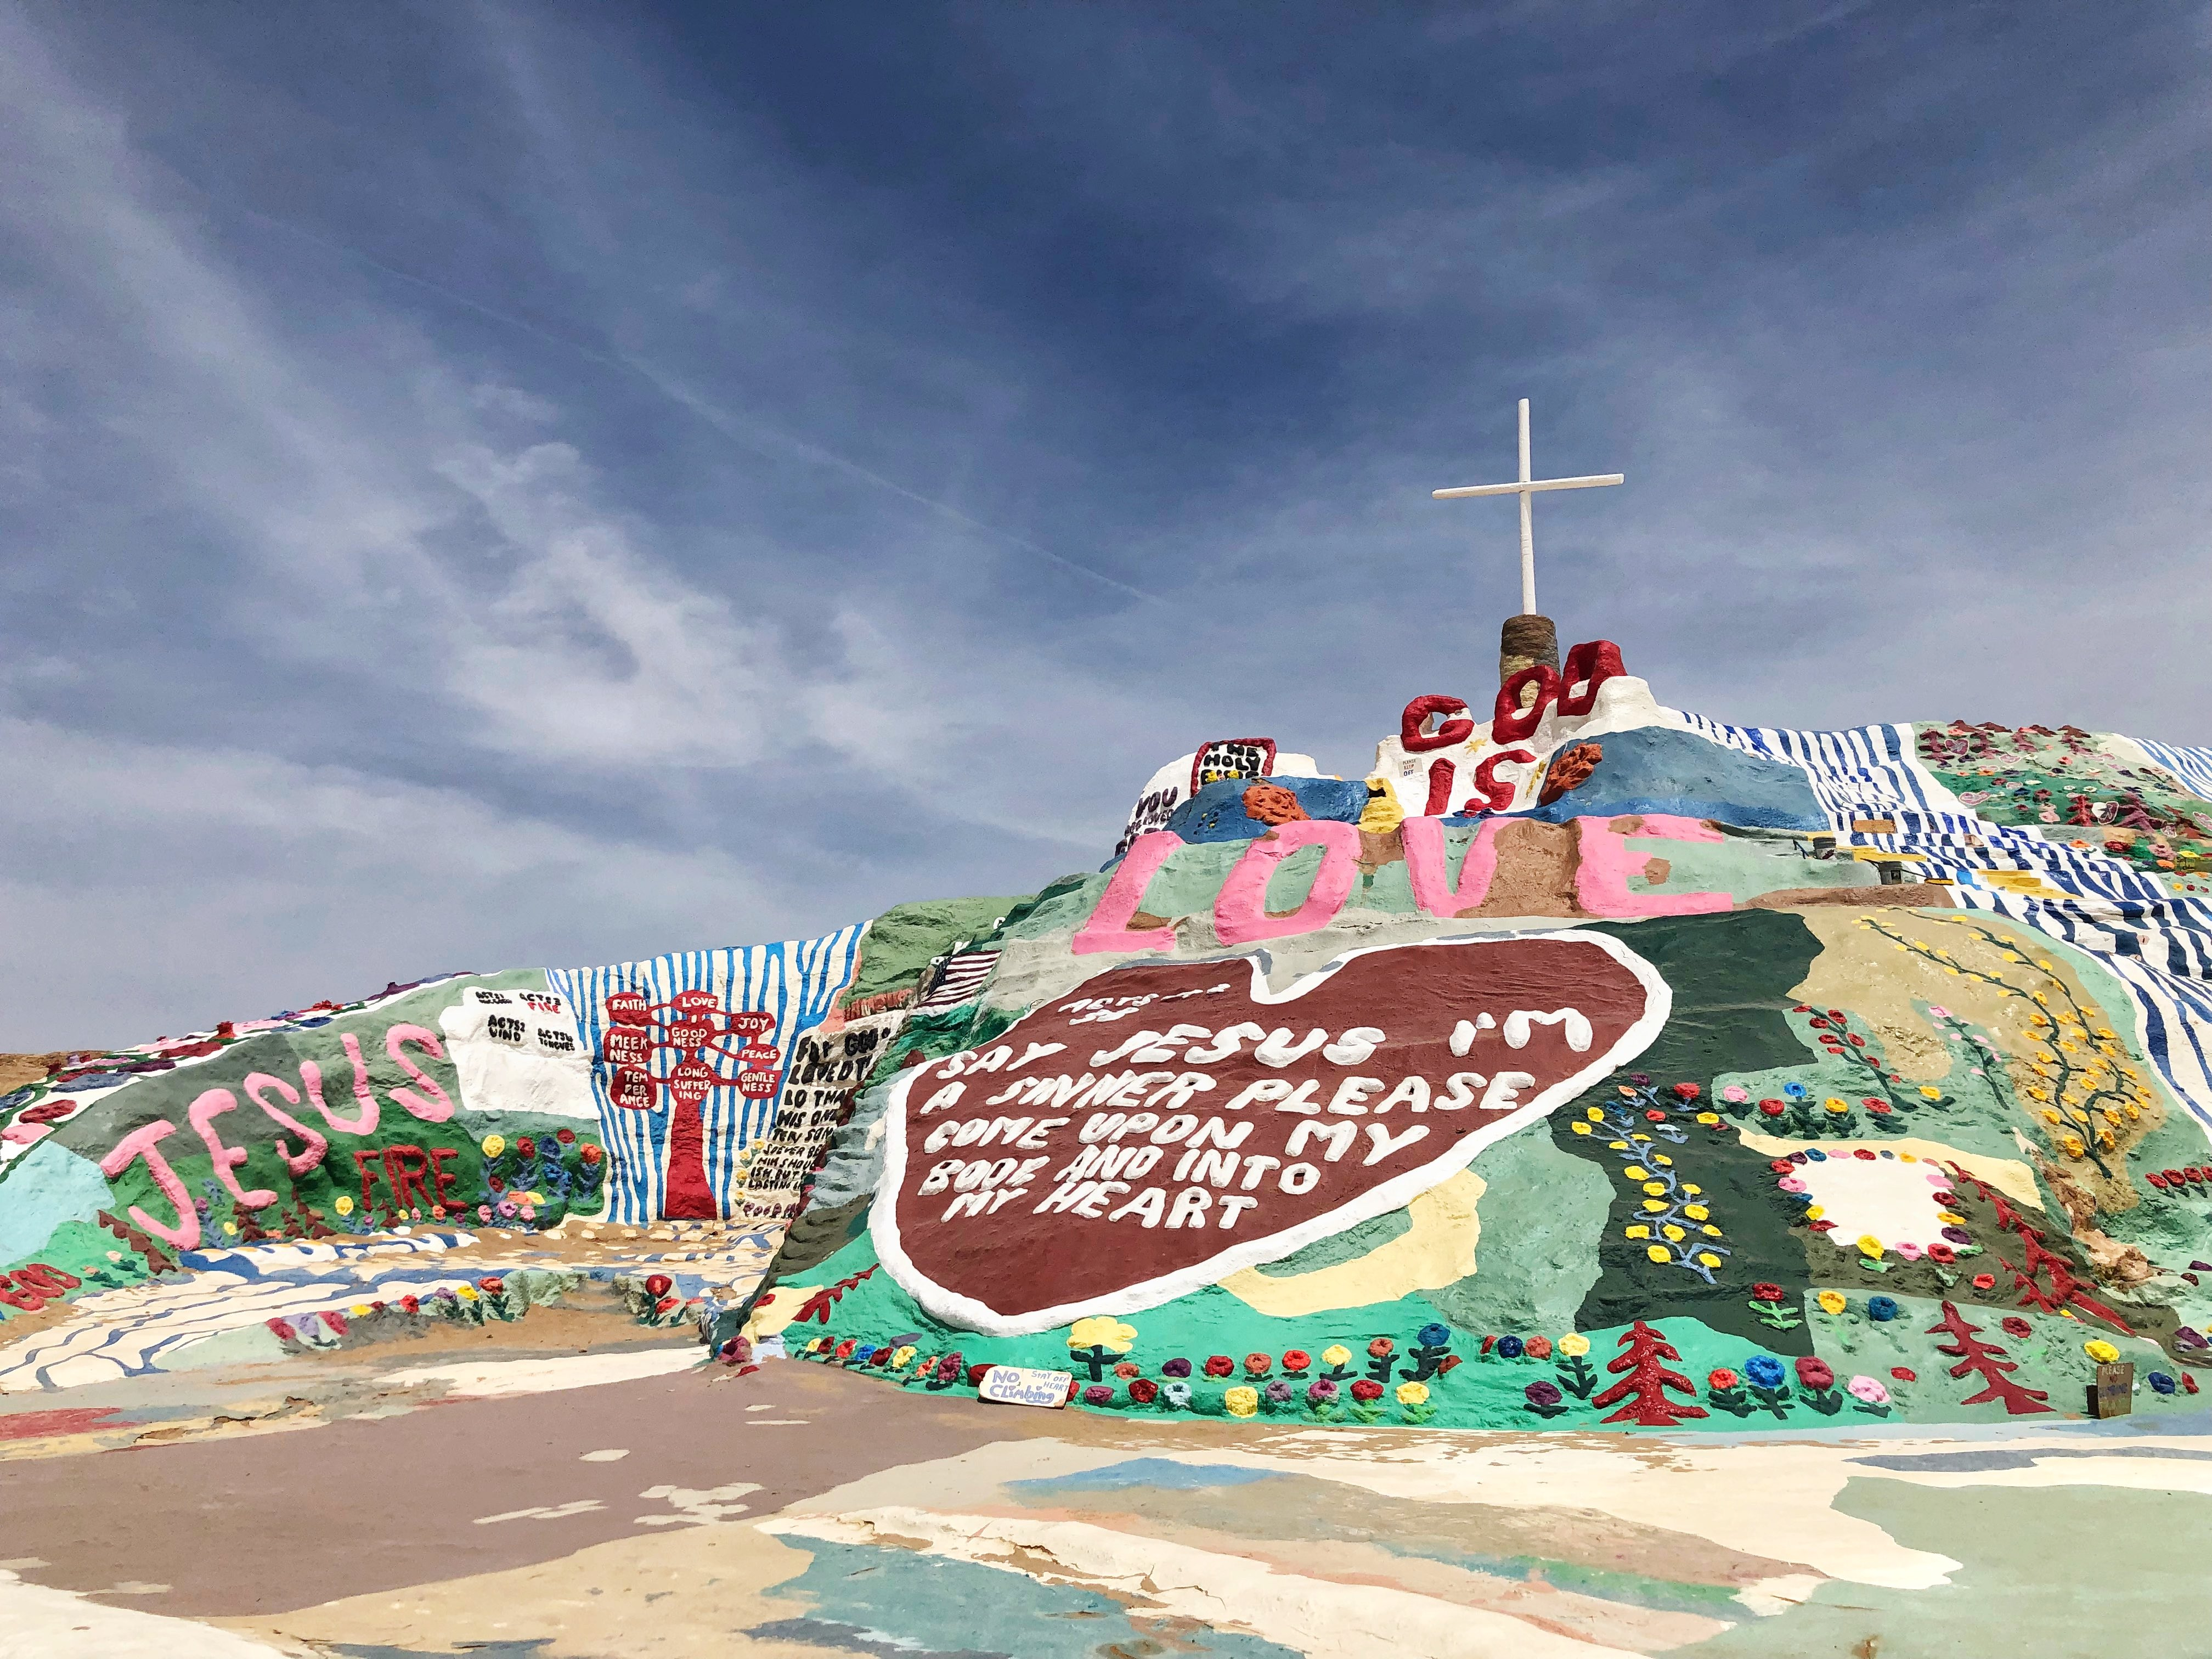 God is Love and The Sinner's Prayer among other testaments to God on Salvation Mountain in Slab City, Calif., on April 30, 2018. ECF